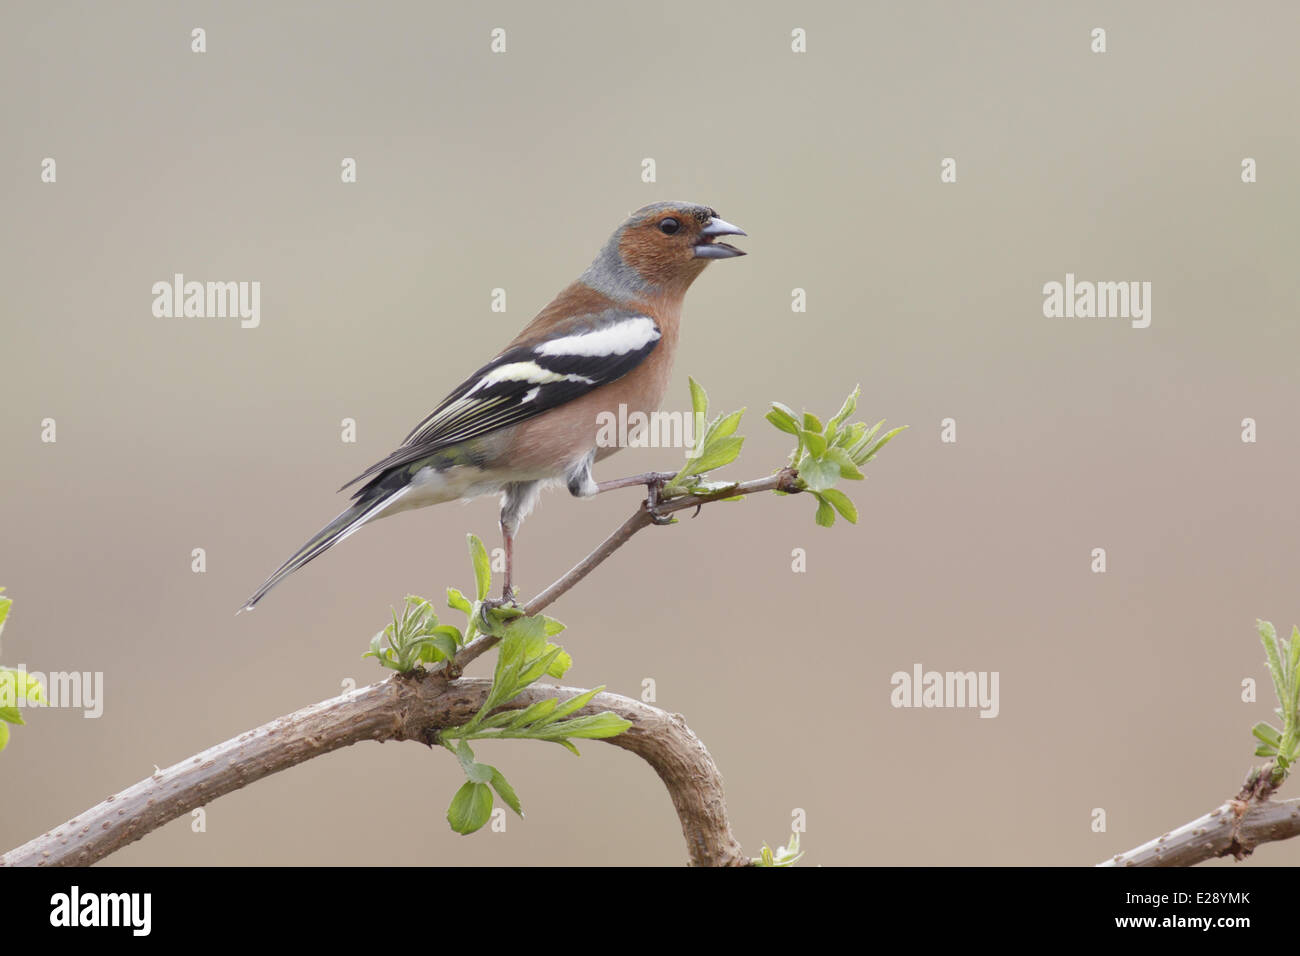 Common Chaffinch (Fringilla coelebs) adult male, with beak open, panting to lose heat, perched on twig, West Yorkshire, - Stock Image